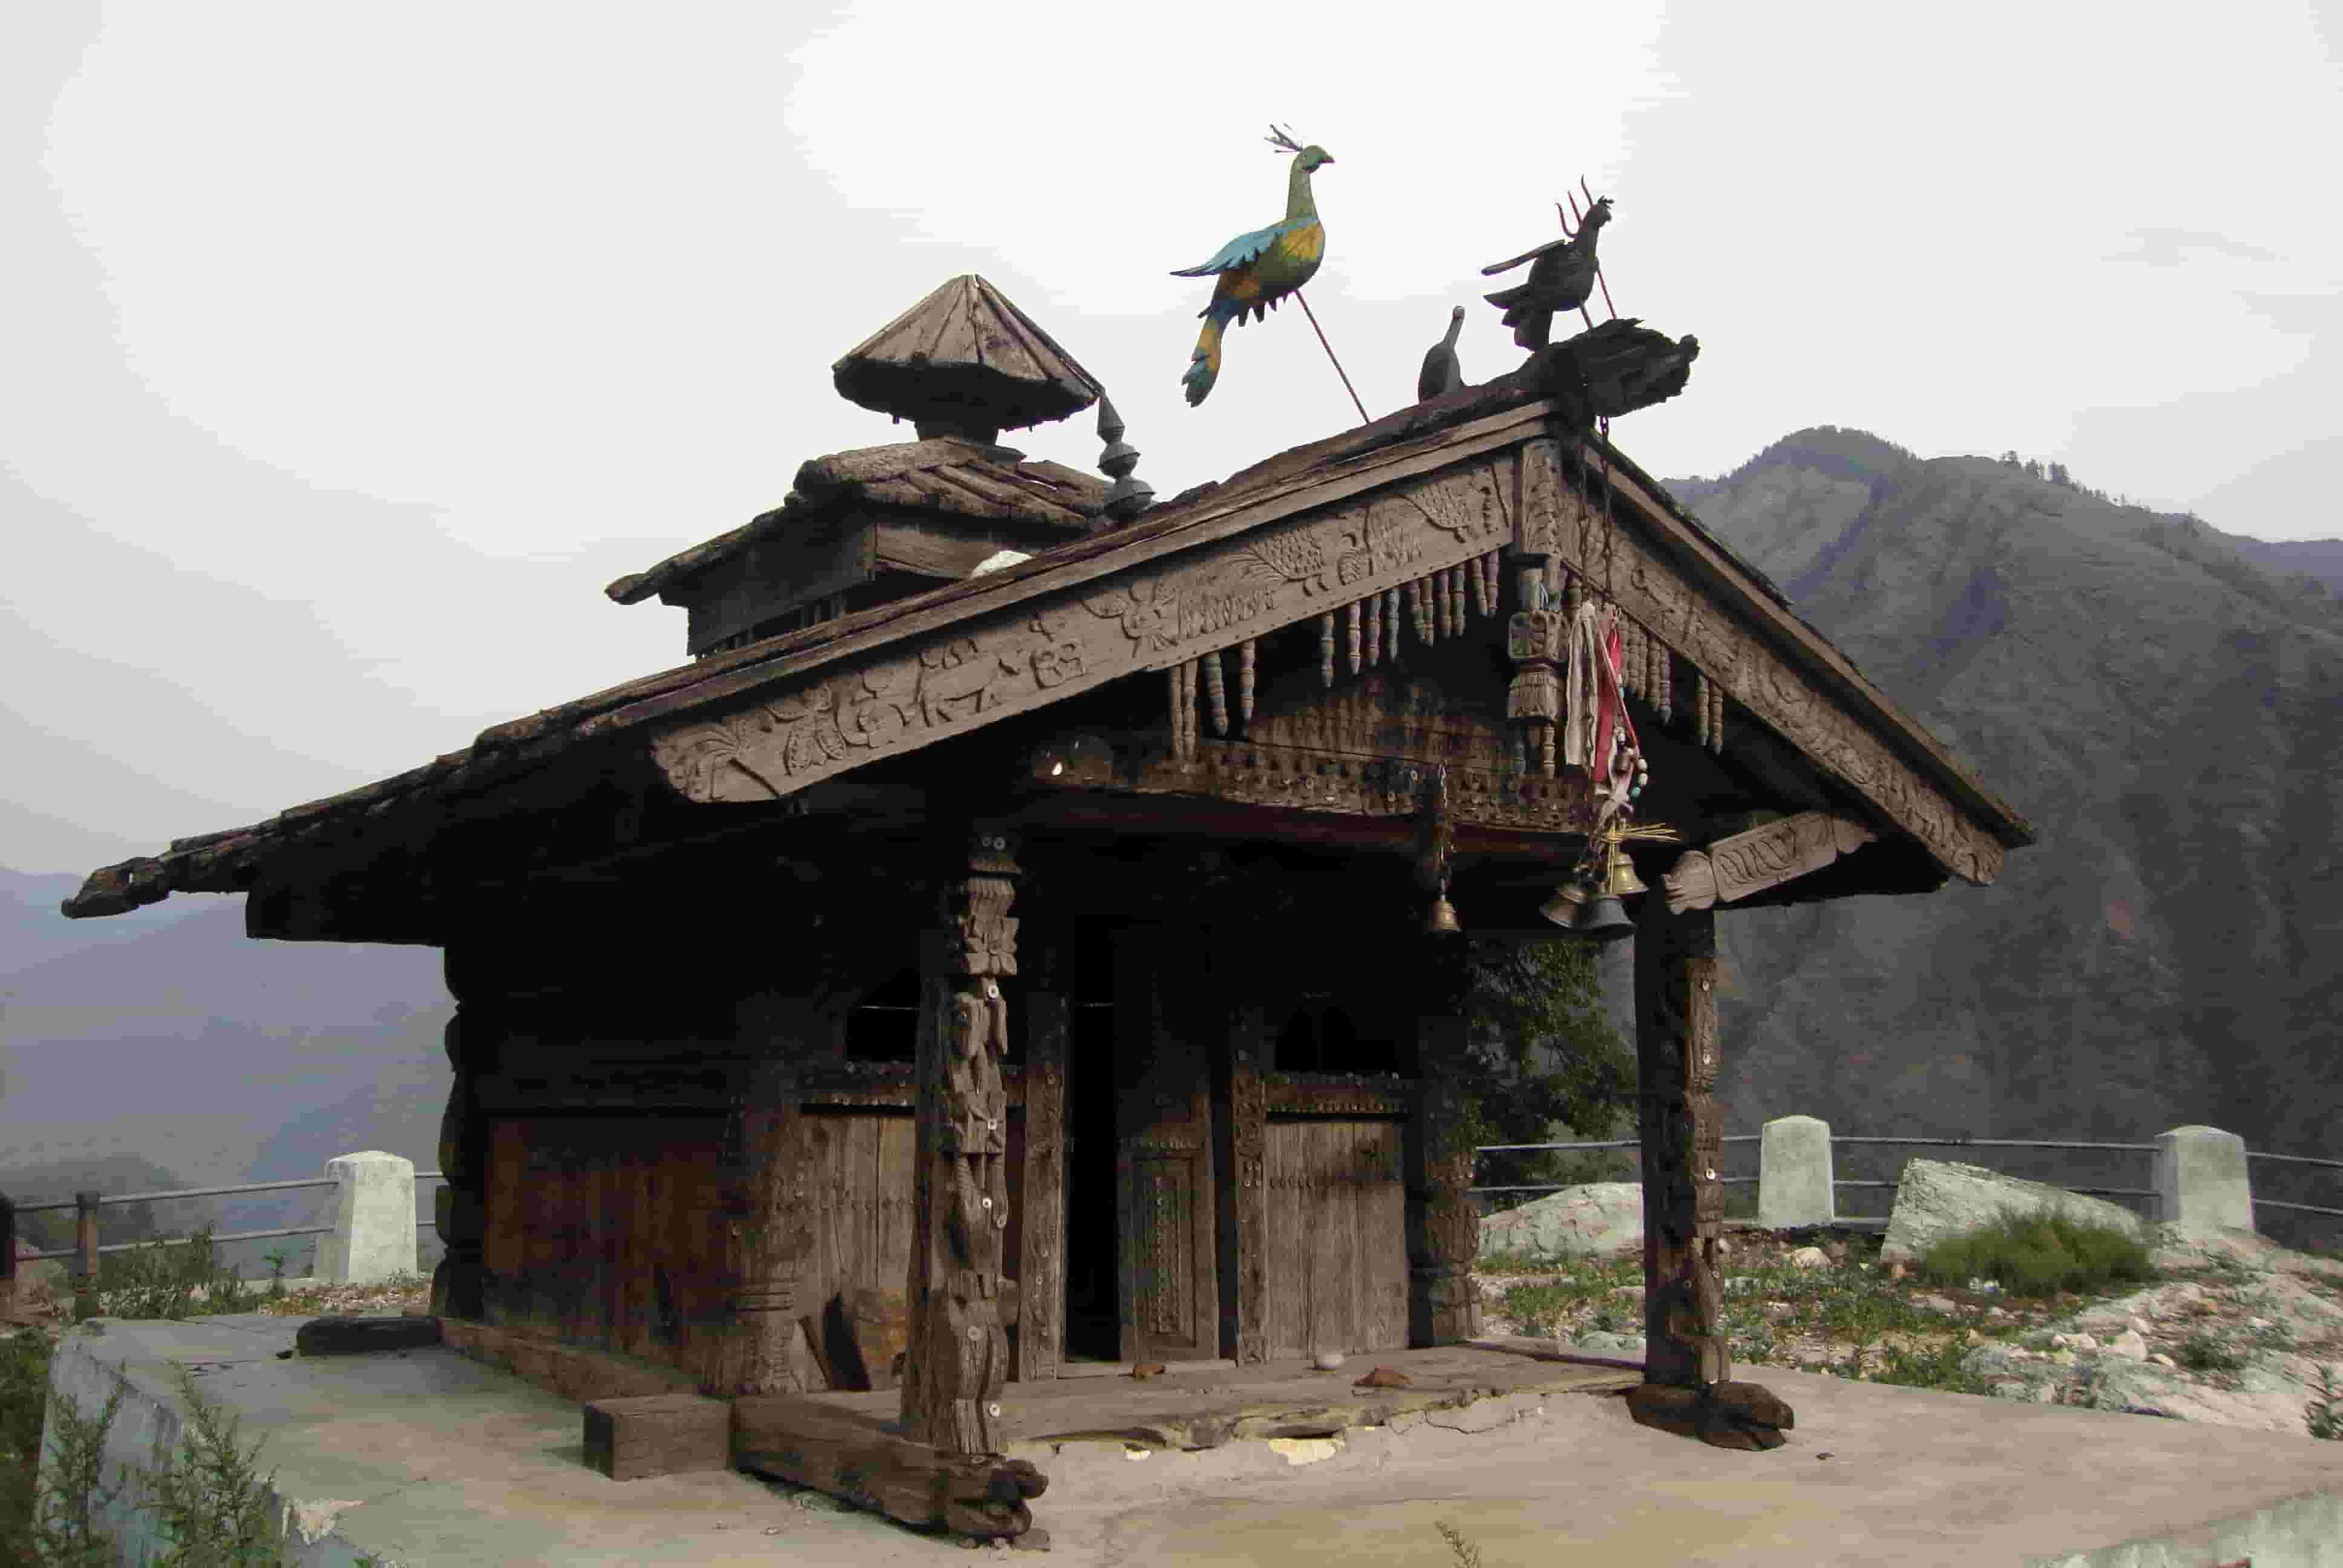 Old wooden temple in Sankri